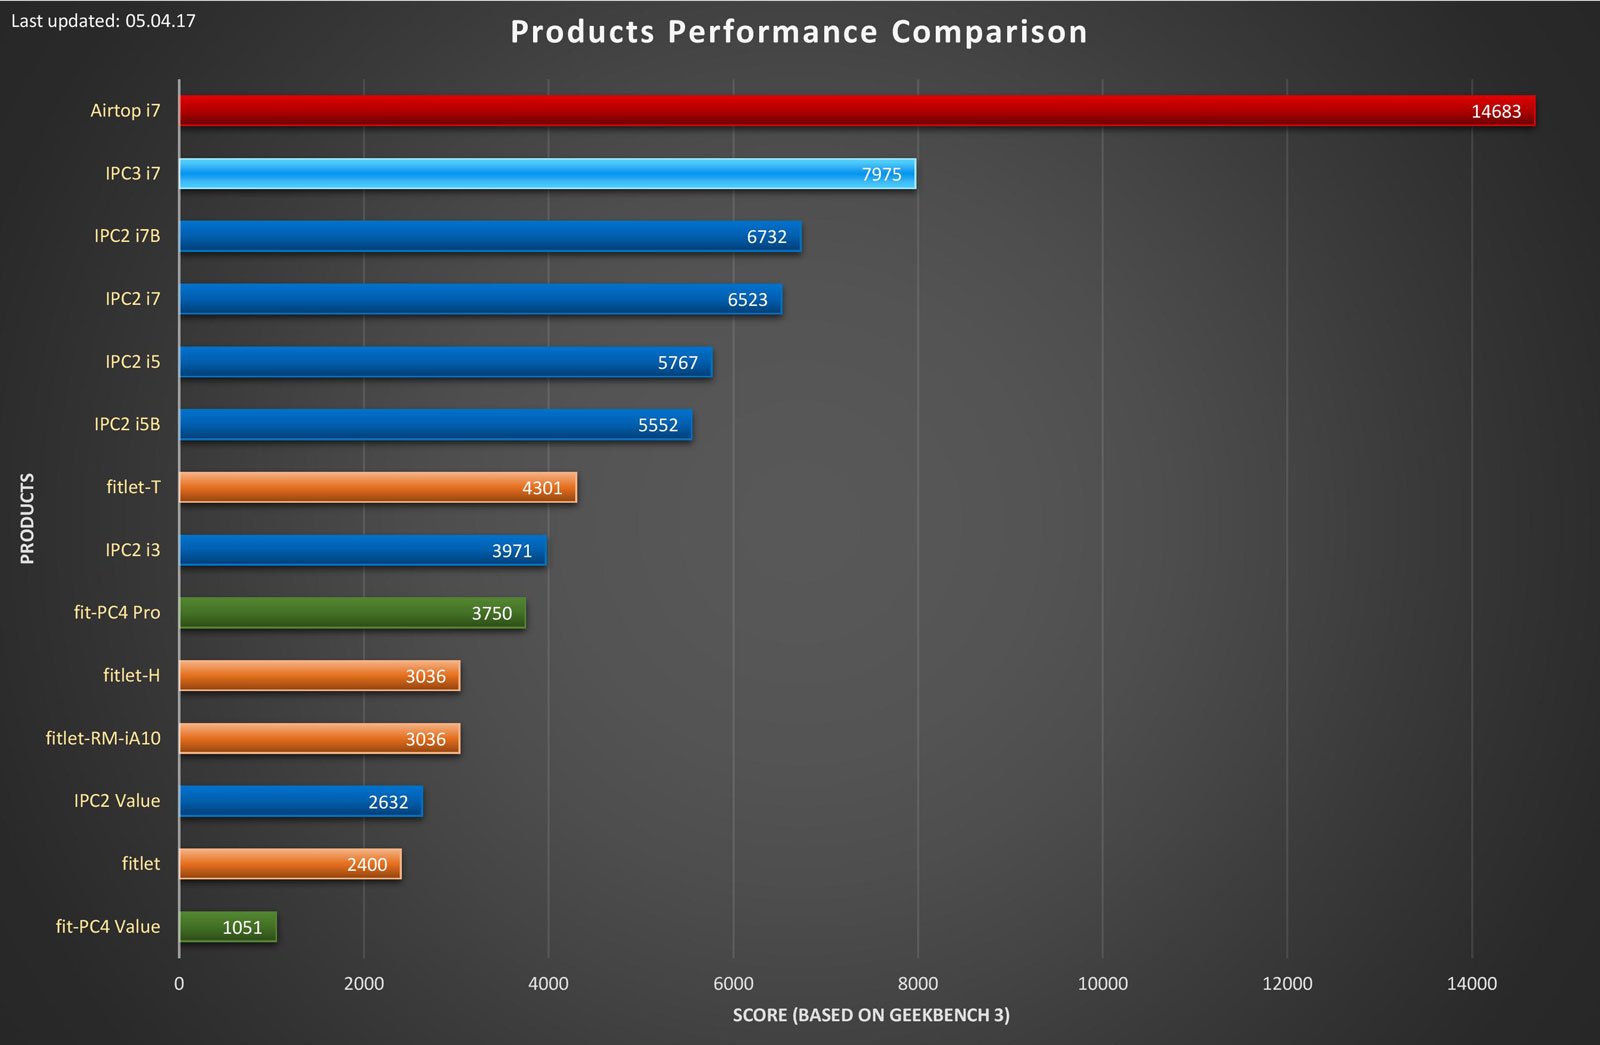 fit-PC performance comparison chart